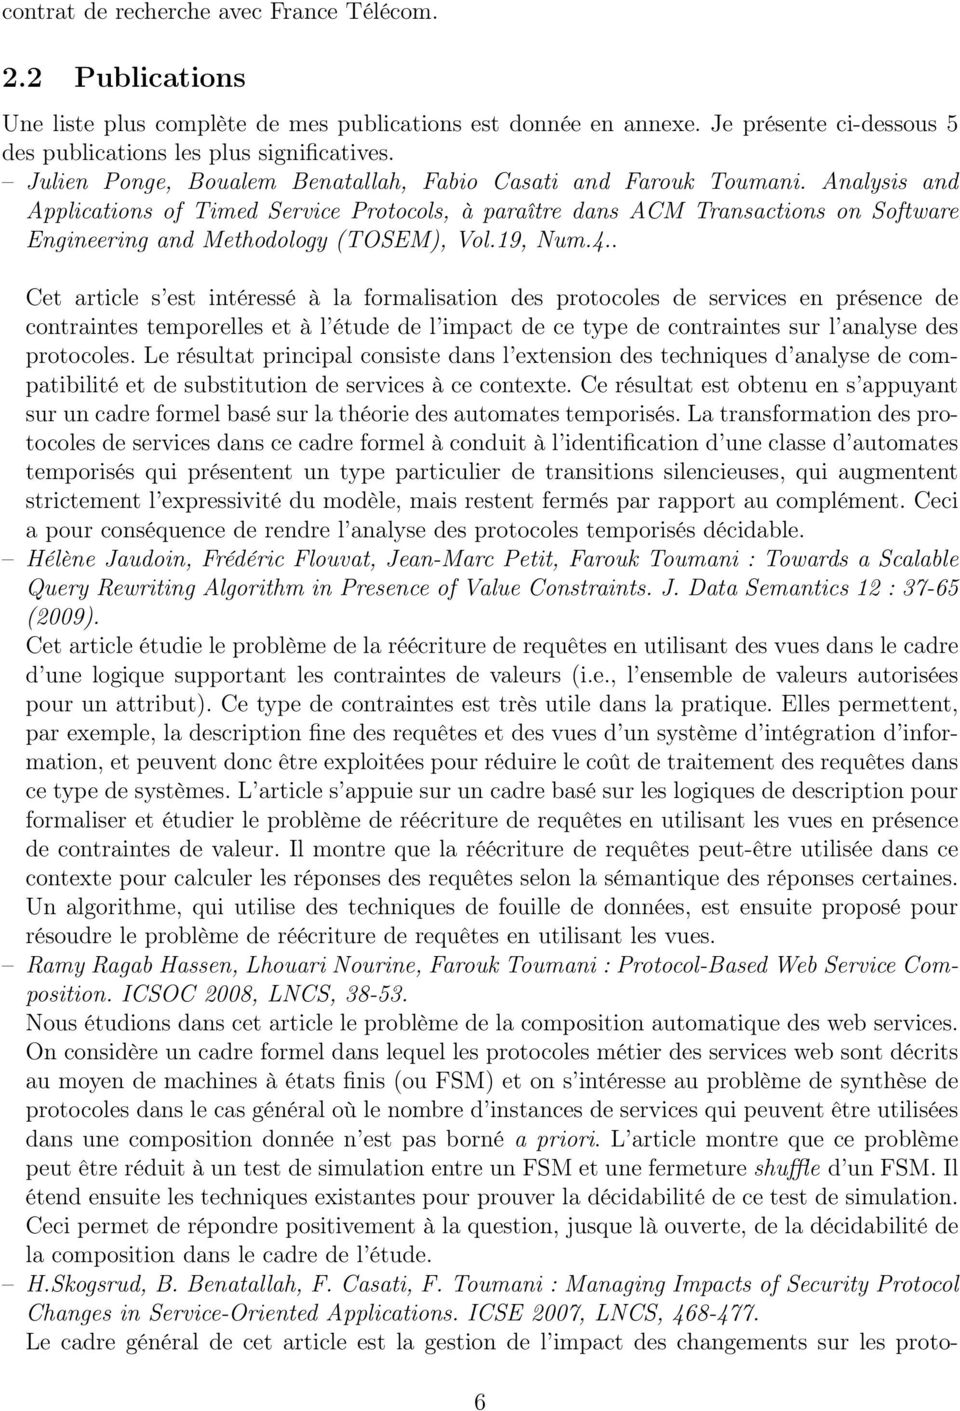 Analysis and Applications of Timed Service Protocols, à paraître dans ACM Transactions on Software Engineering and Methodology (TOSEM), Vol.19, Num.4.